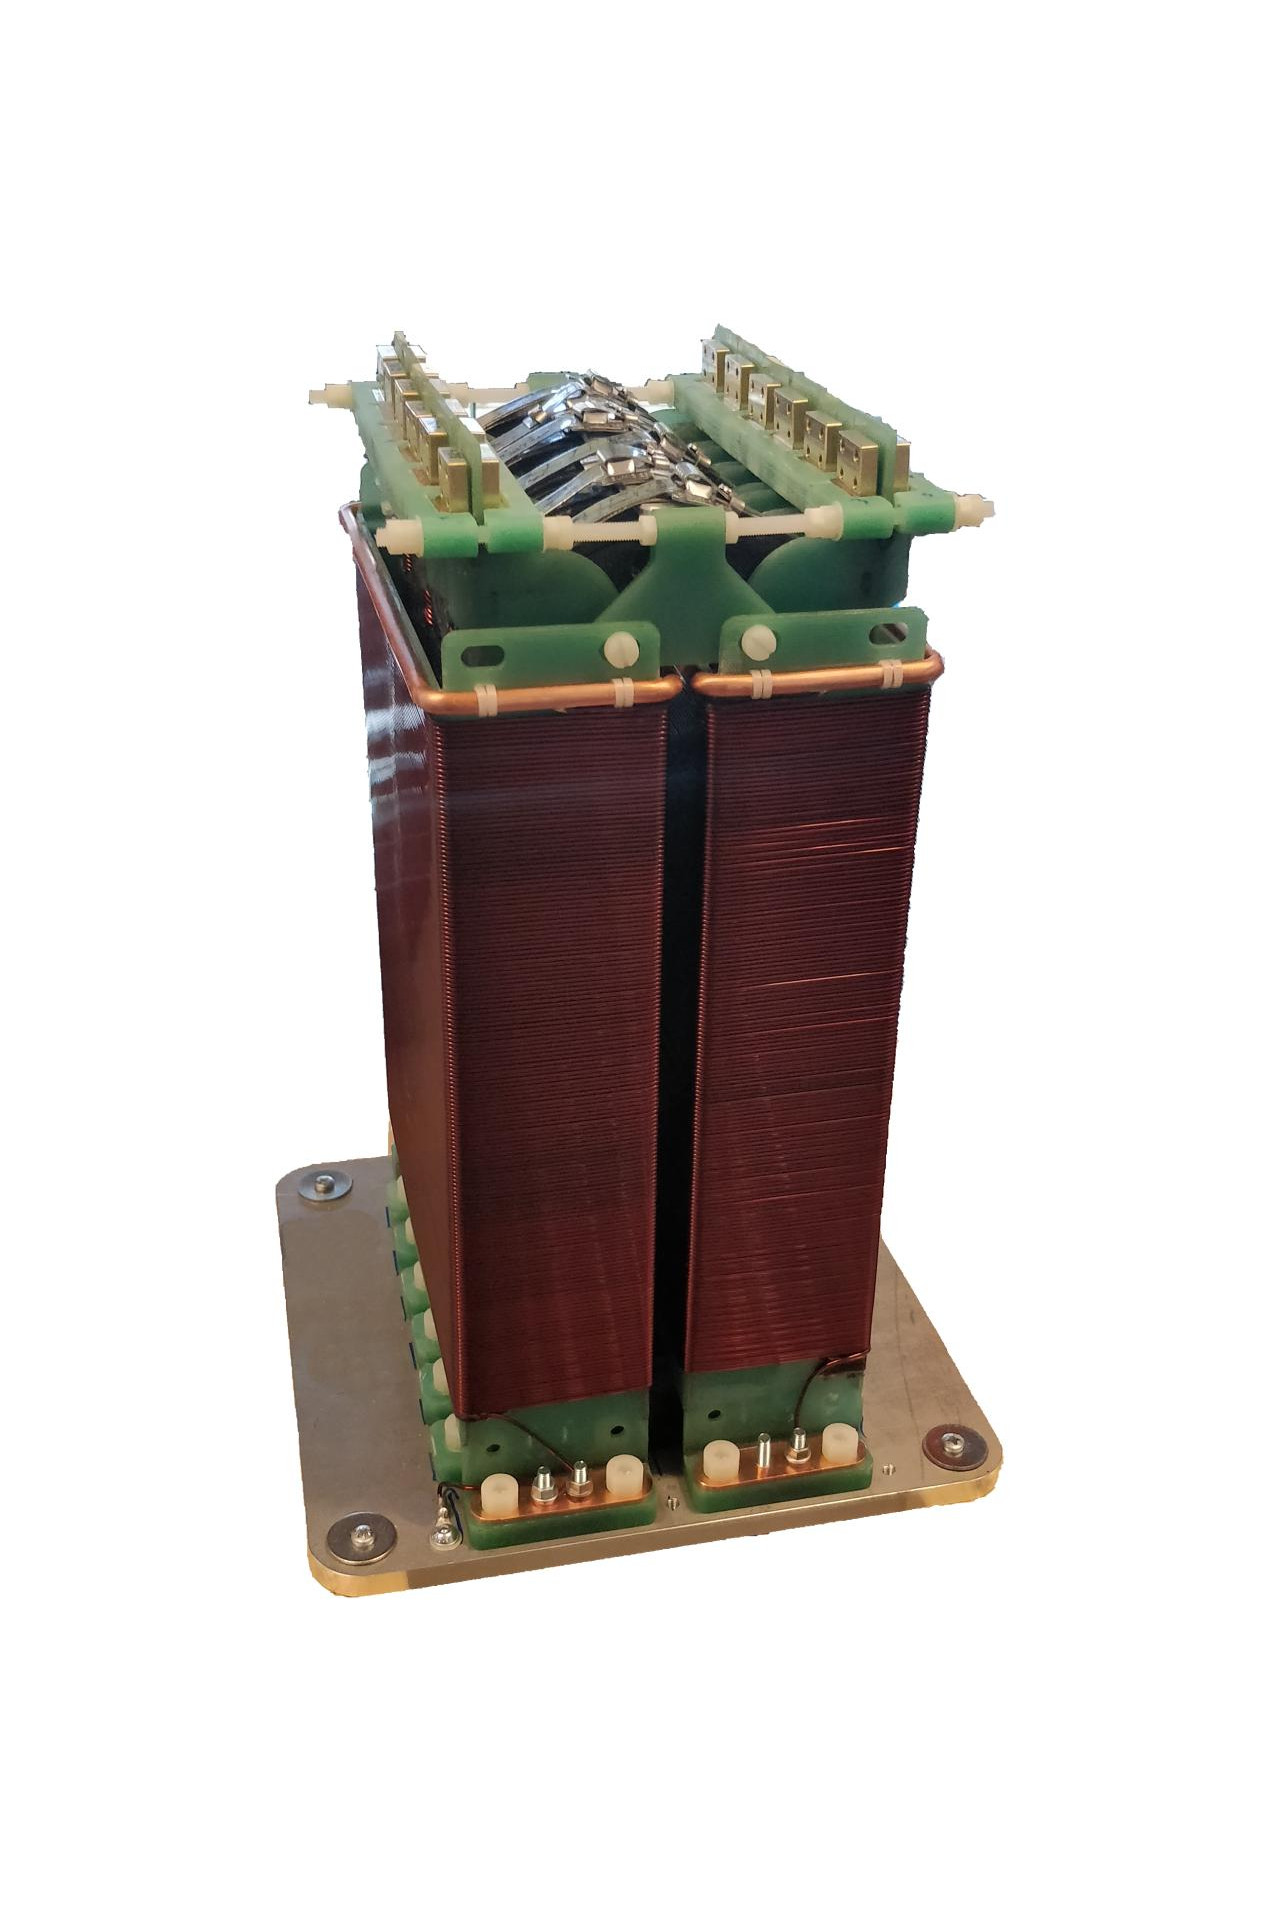 Prototype of Short Pulse Transformer. This special transformer is integrated with sub-systems of High Voltage pulsed power generators (modulators). It can supply different types of loads like Radio Frequency amplifiers (magnetrons, klystrons), electrostatic plates for pulsed electric field generators, etc. for the following applications: - Scientific applications (e.g. particle accelerators) - Medical applications: Radiotherapy machines - Industrial and military applications (e.g. radars, cargo X-ray scanners, sterilization machinery, food processing, water treatment, etc.)